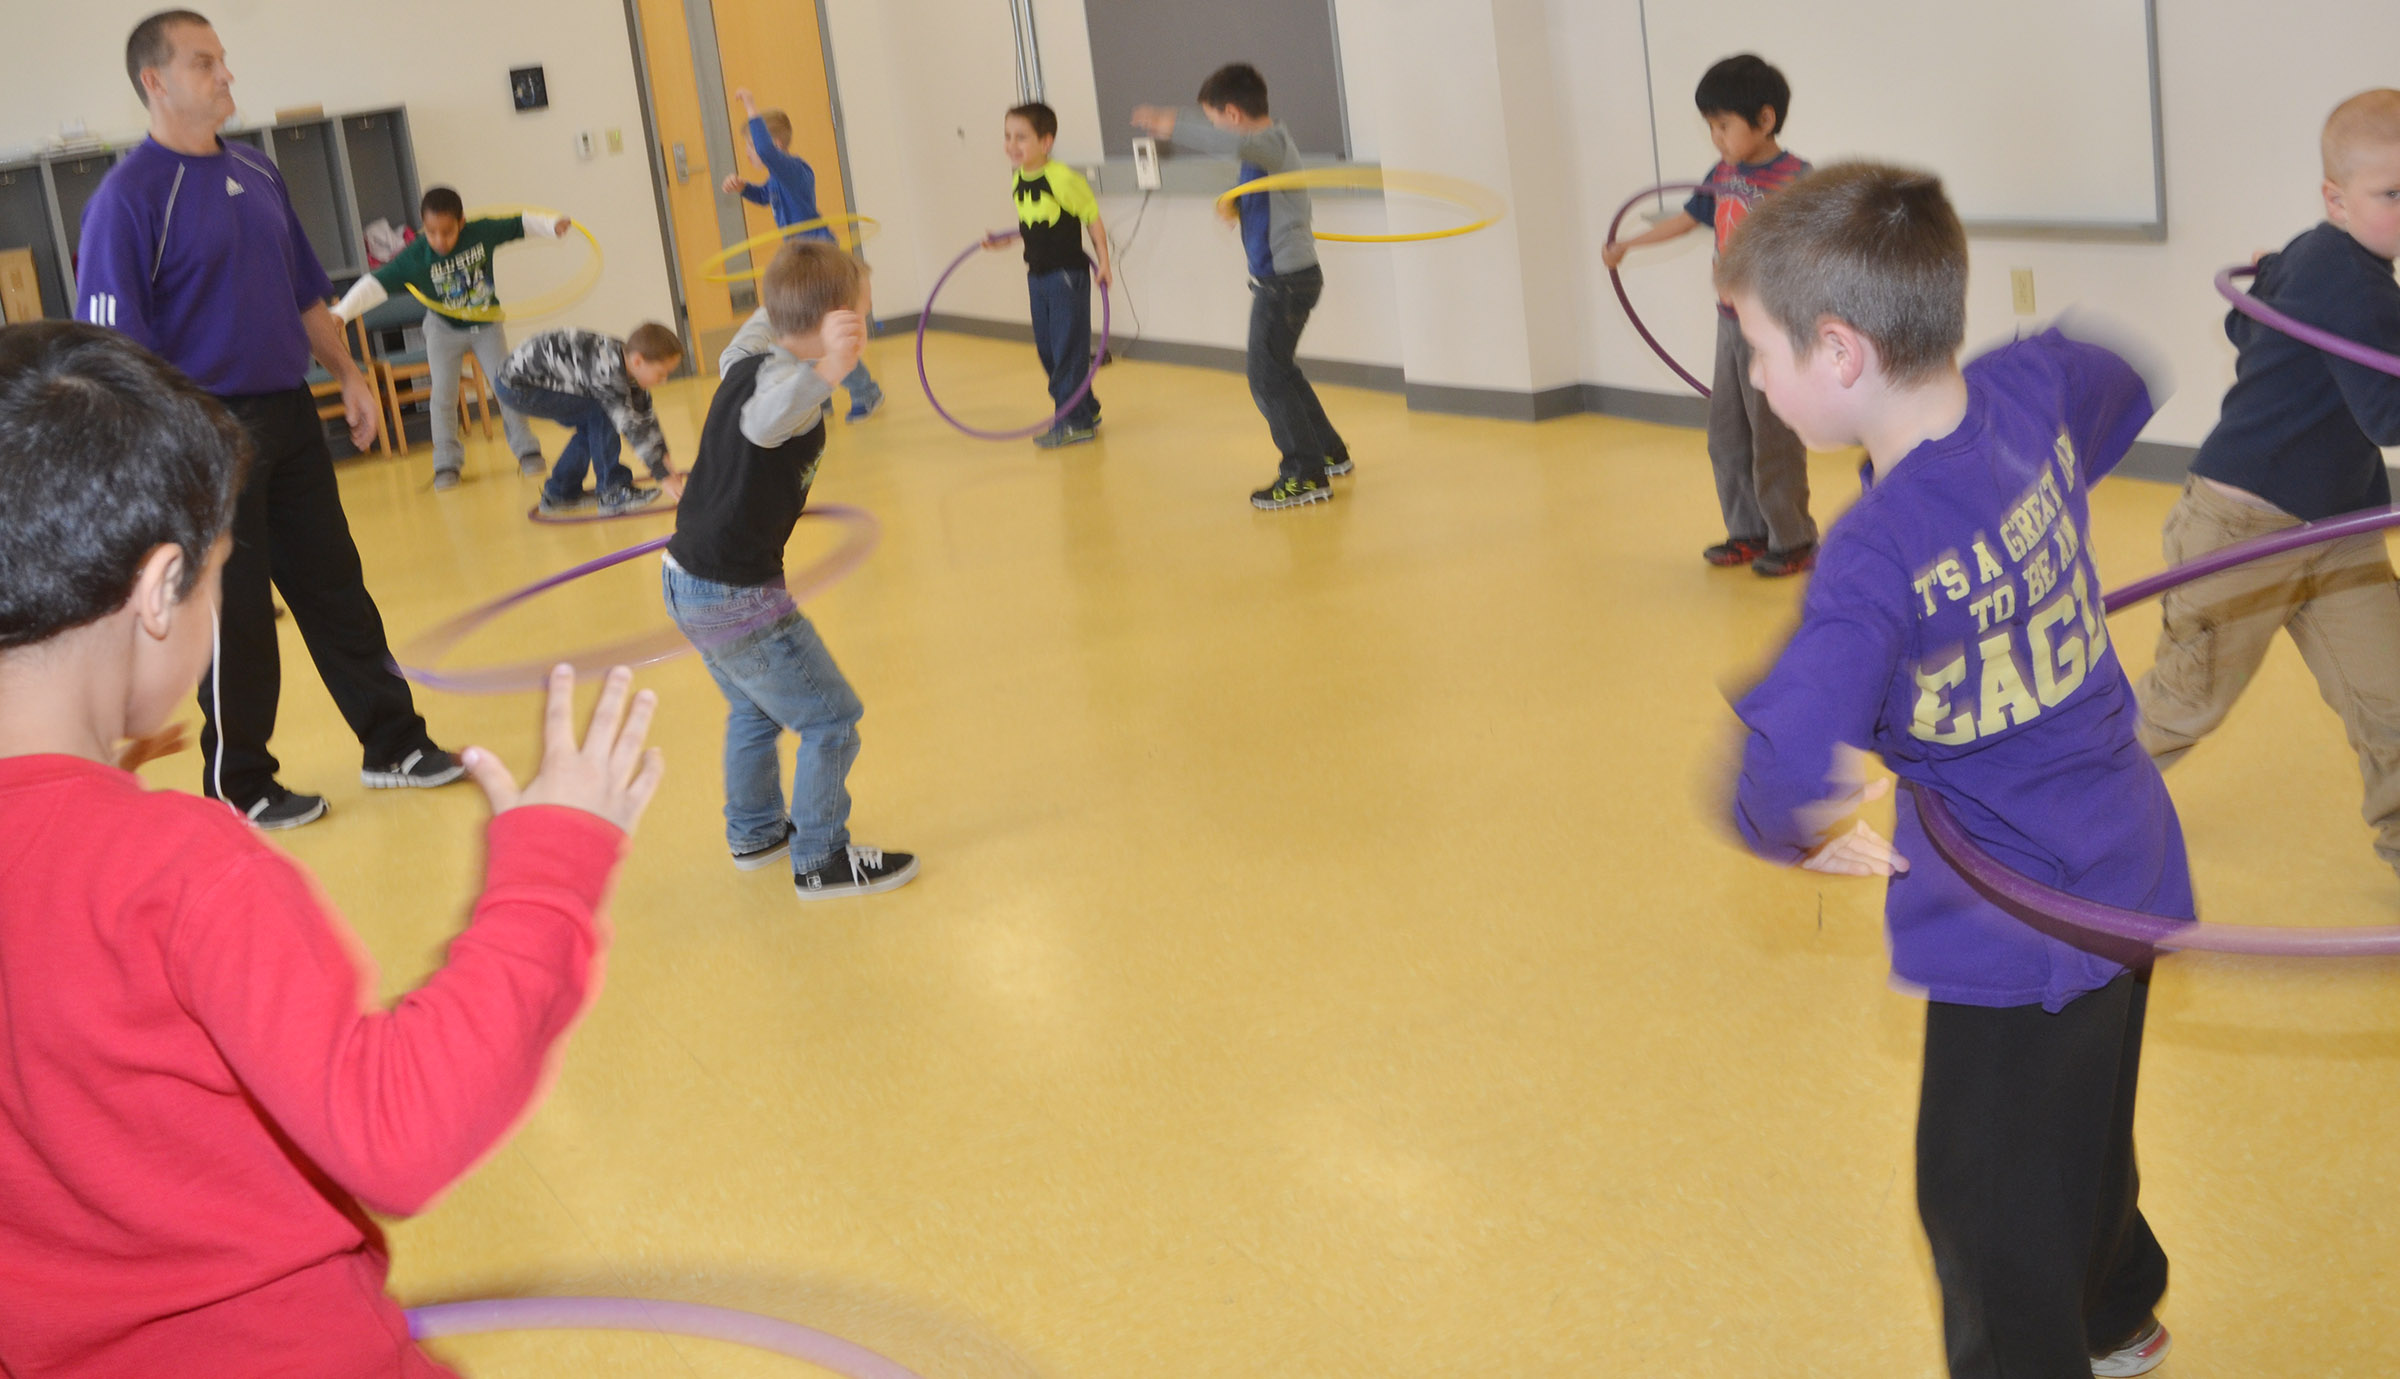 CES PE teacher Lynn Kearney watches as his students practice their hula hoop skills.